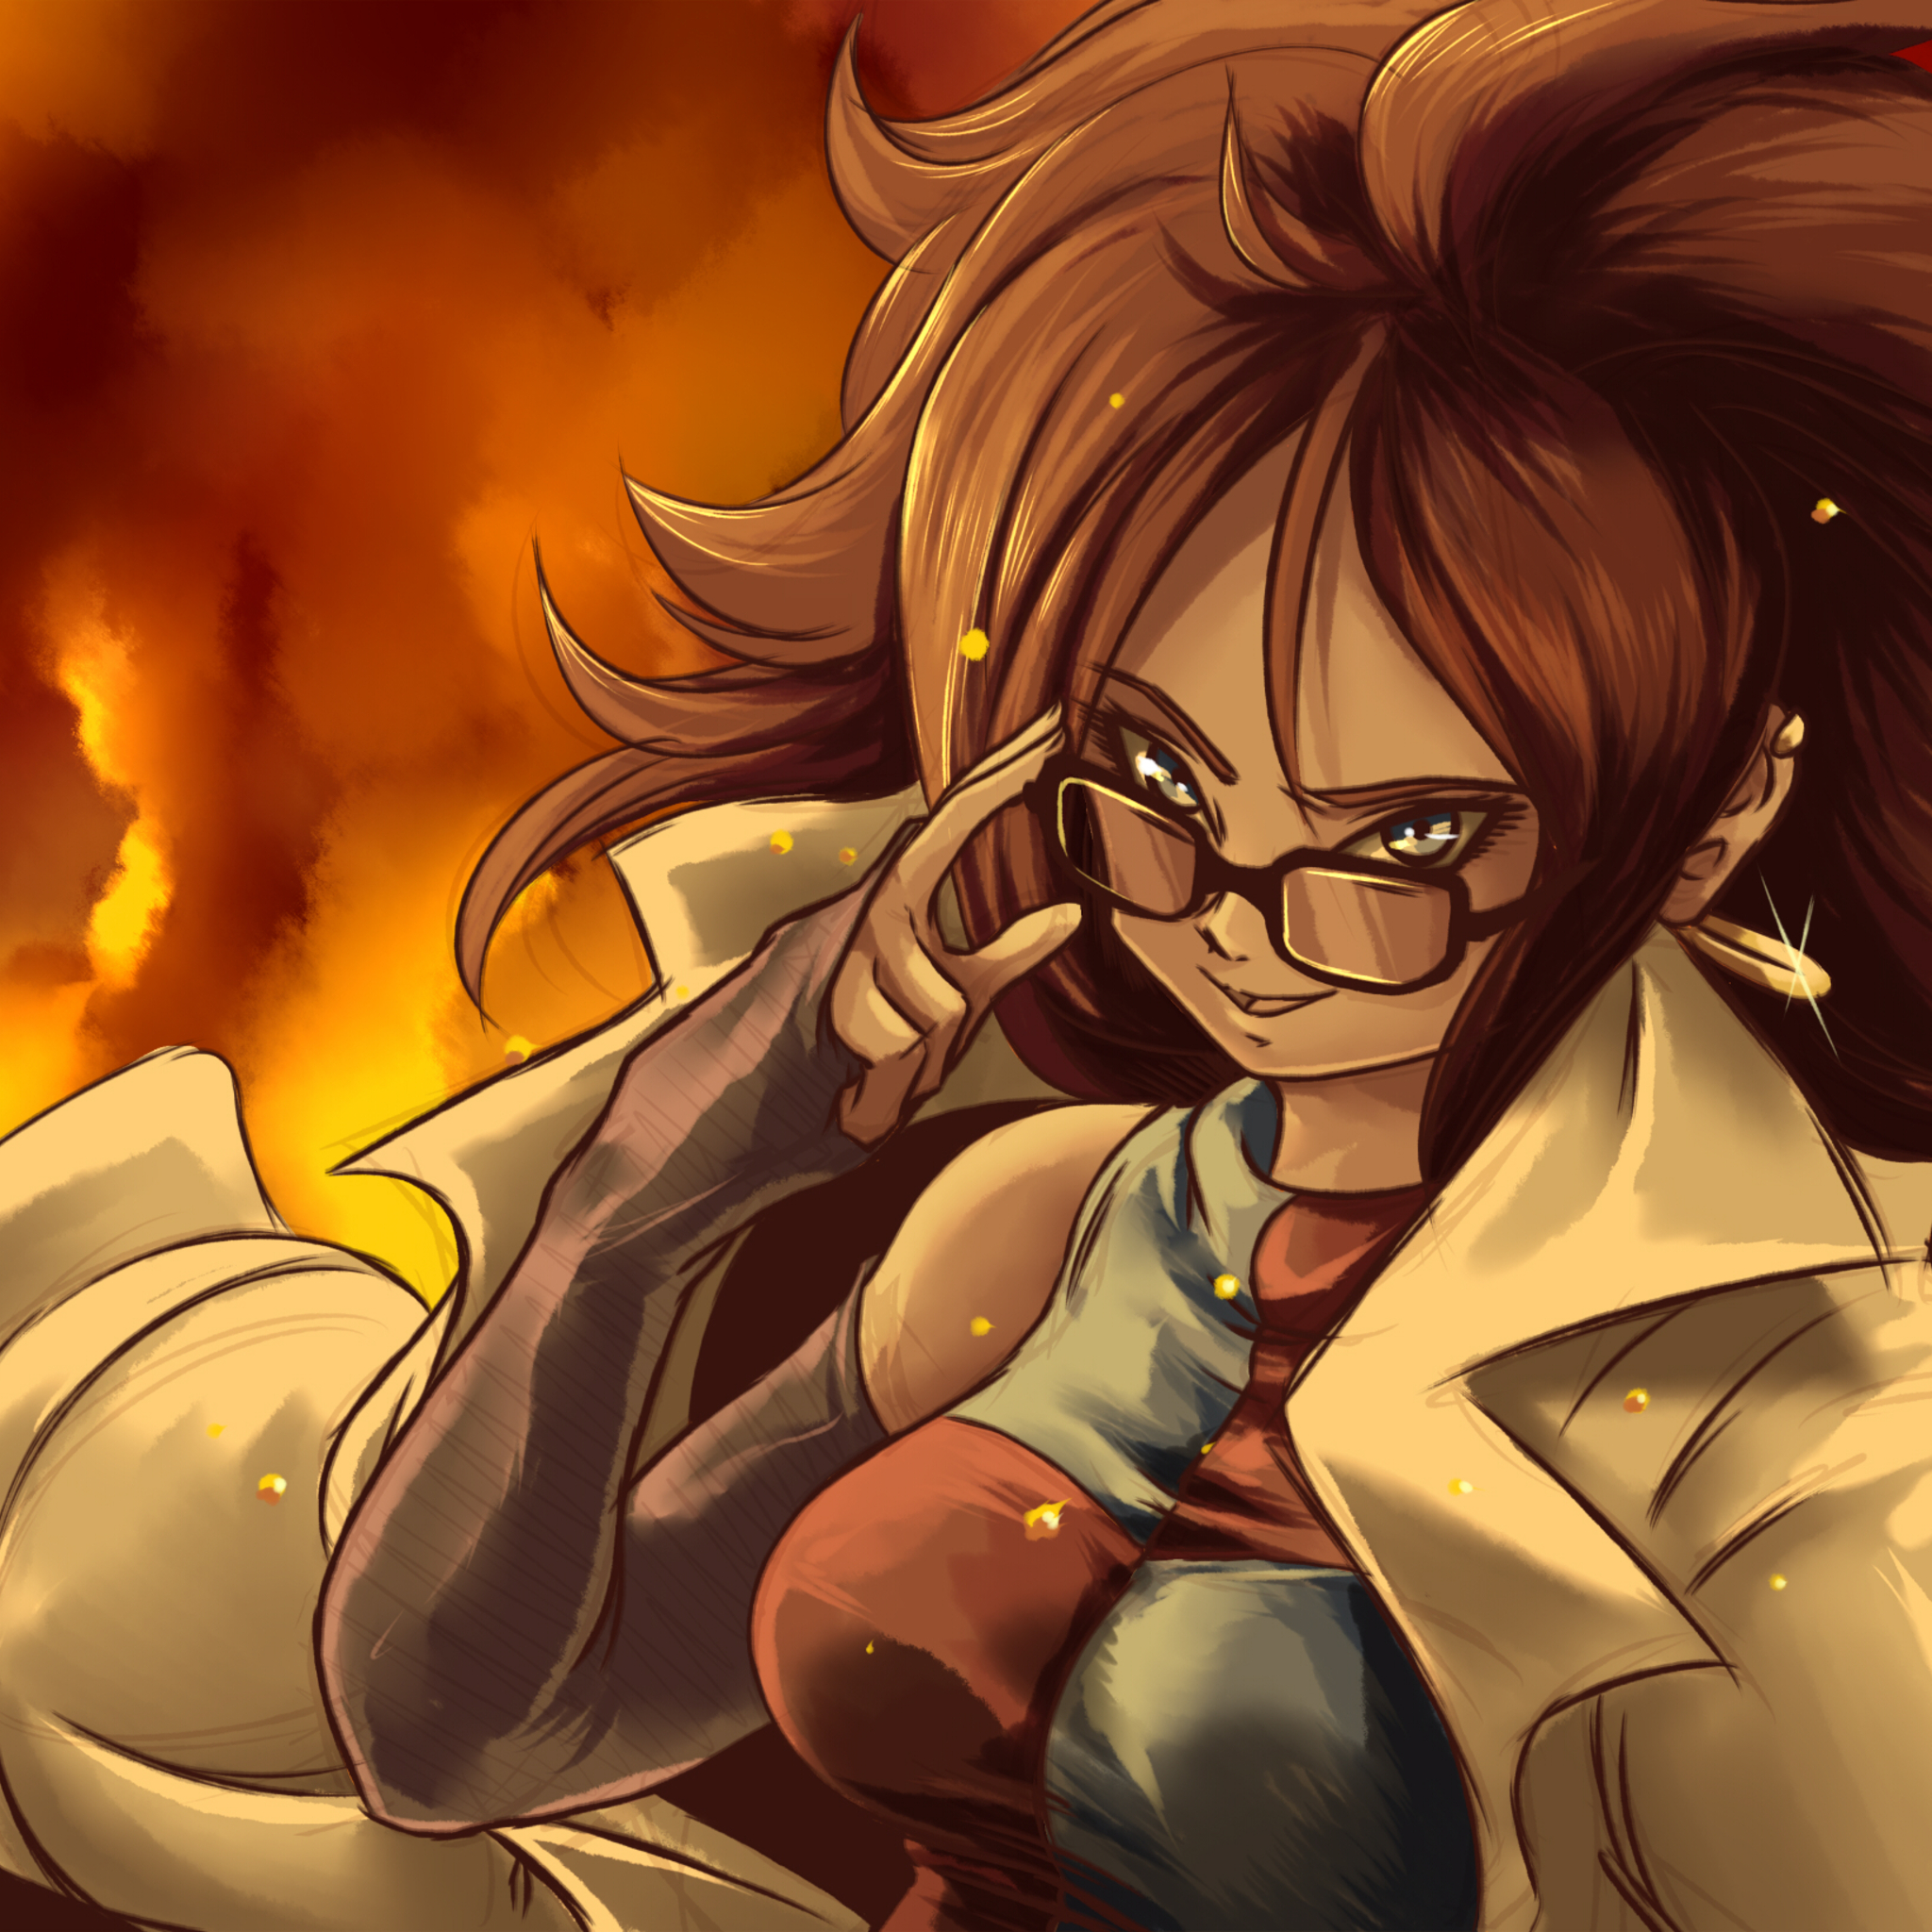 Dragon Ball Android 21: 2048x2048 Android 21 Dragon Ball Fighterz Ipad Air HD 4k